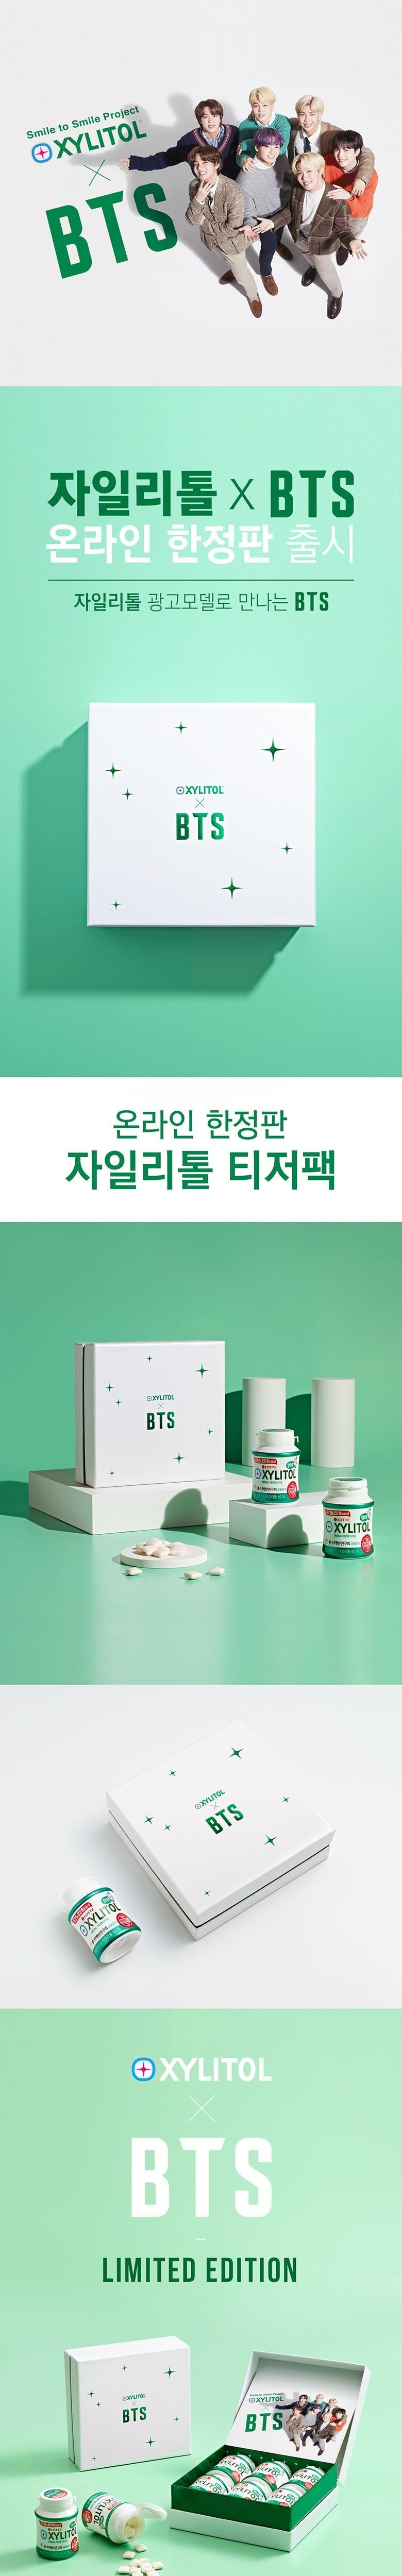 [BTS] Xylitol x BTS Limited Edition